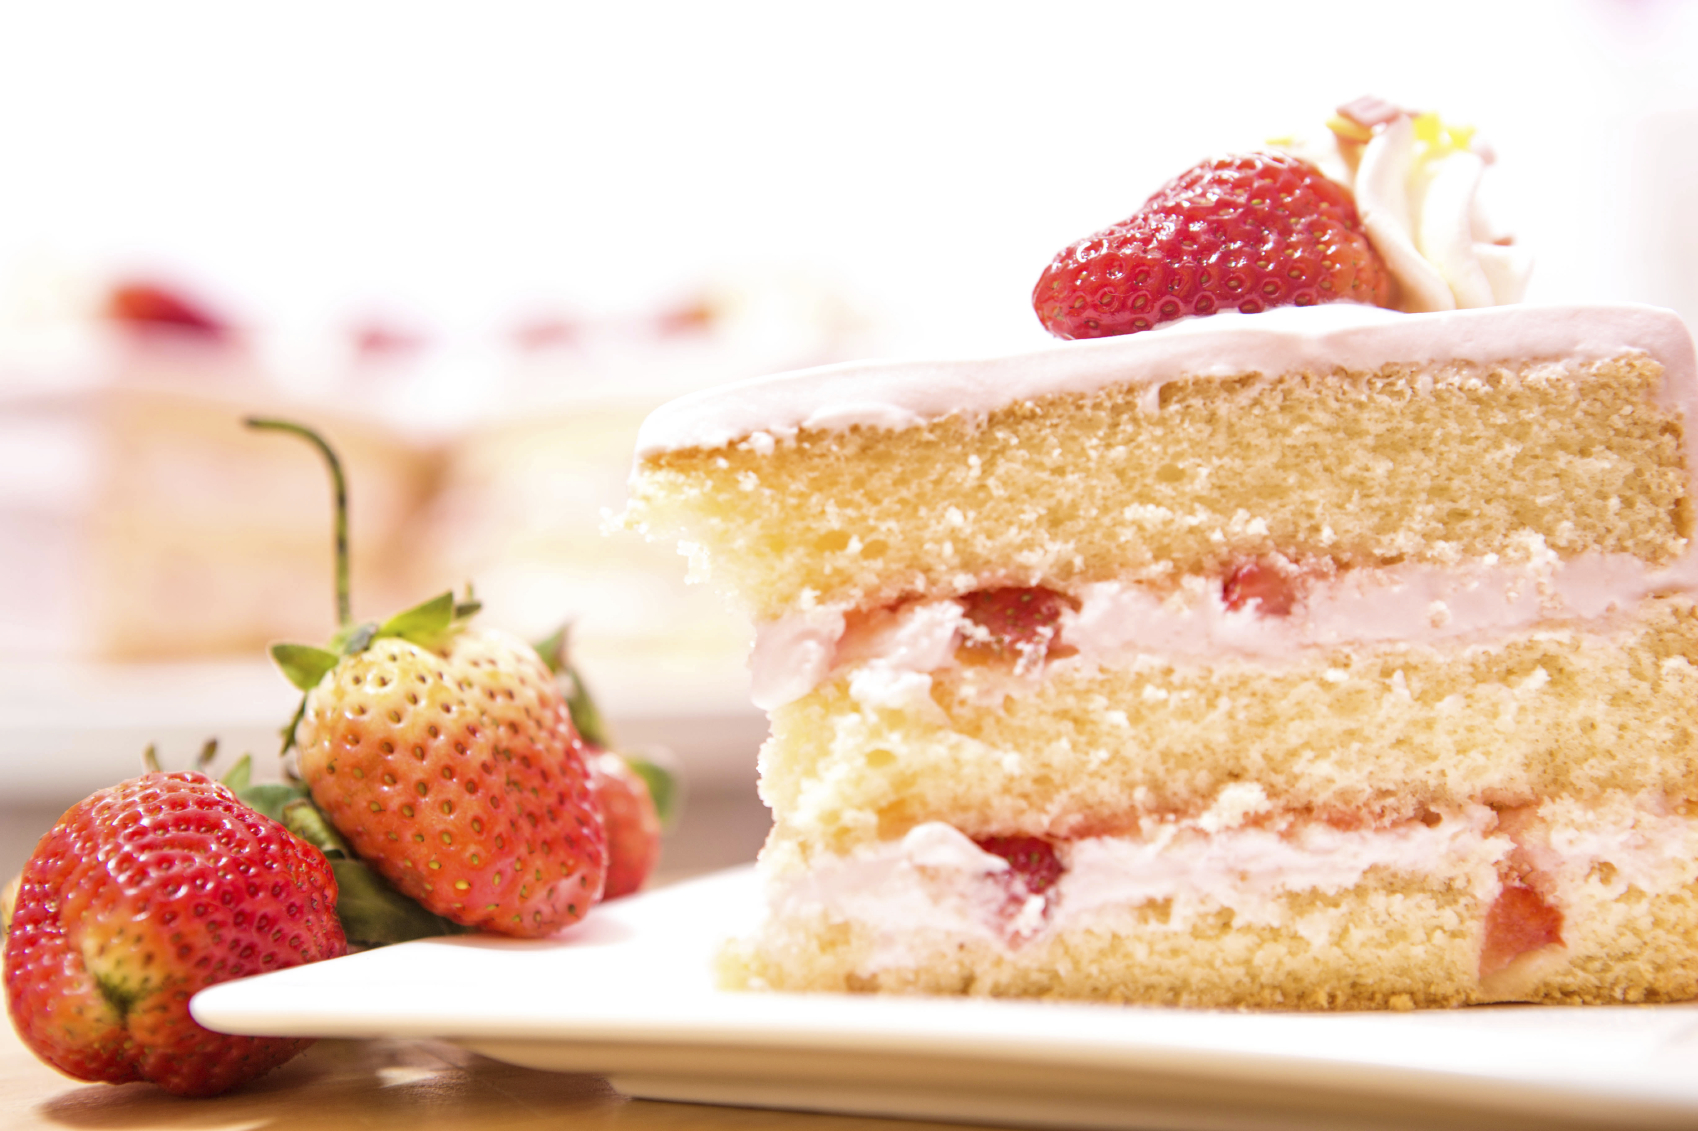 Recipe: A simple genoise style sponge with fresh fruit